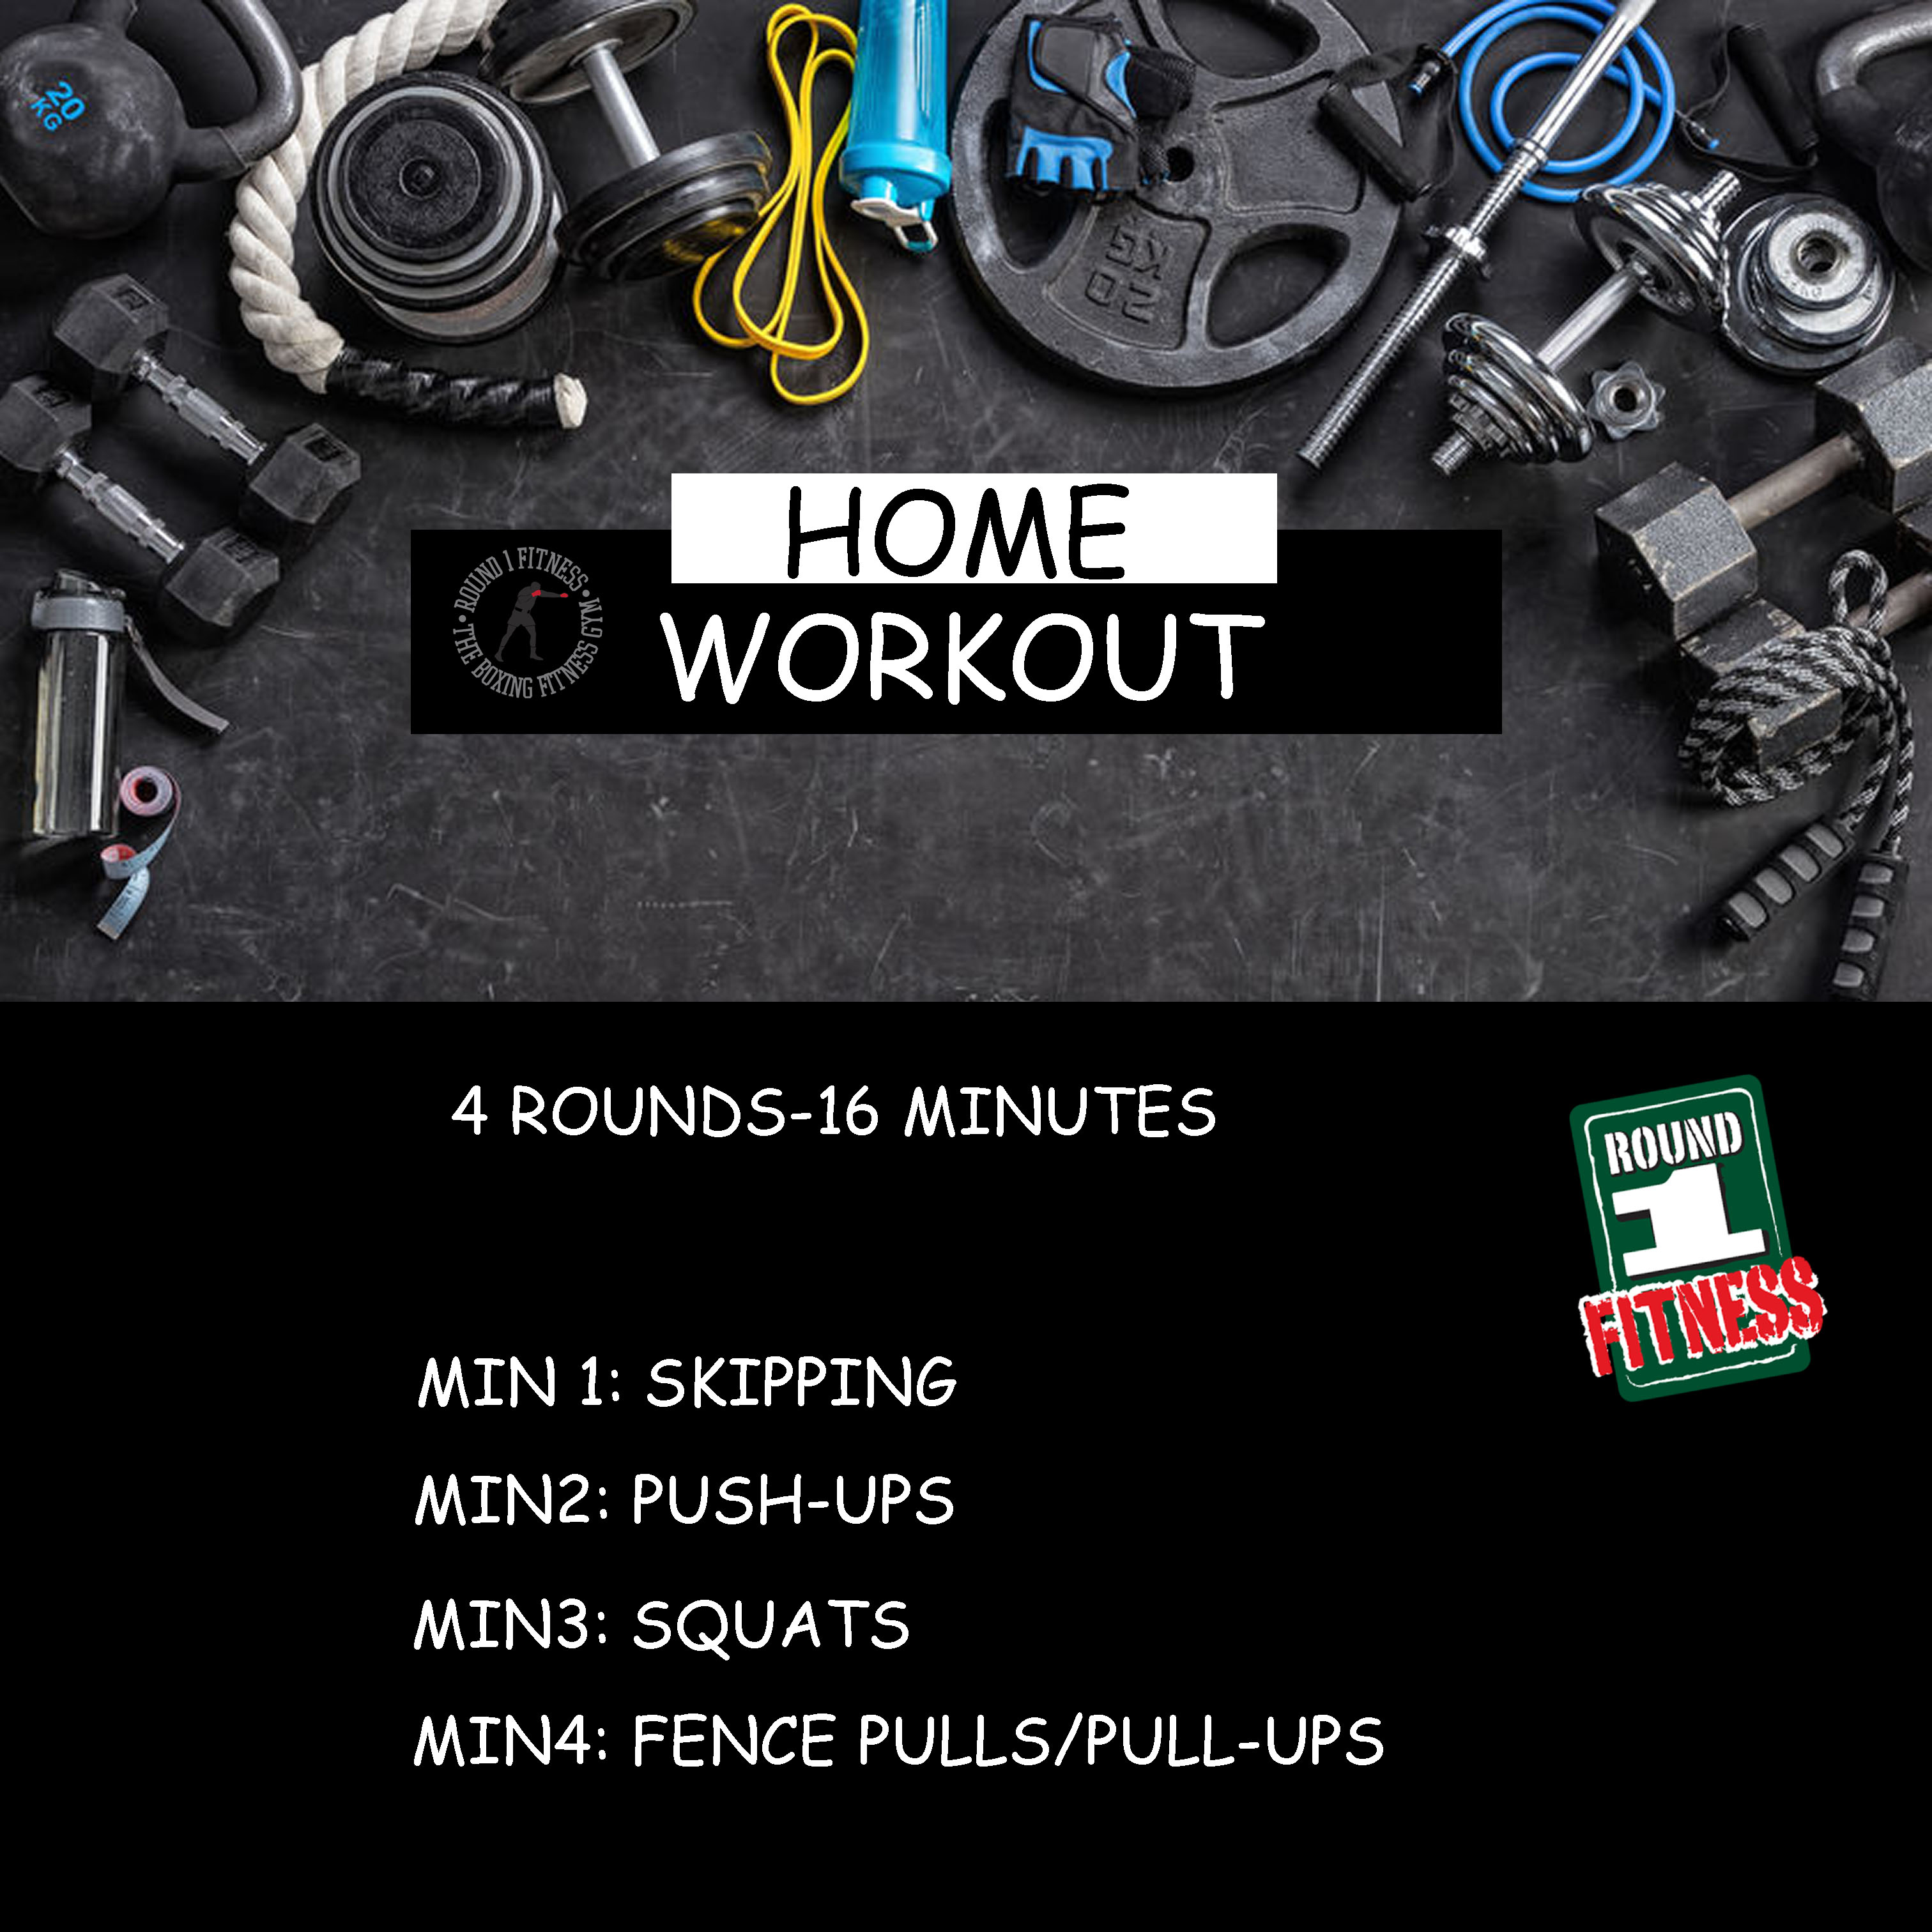 Home Workout:  Friday, May 1st